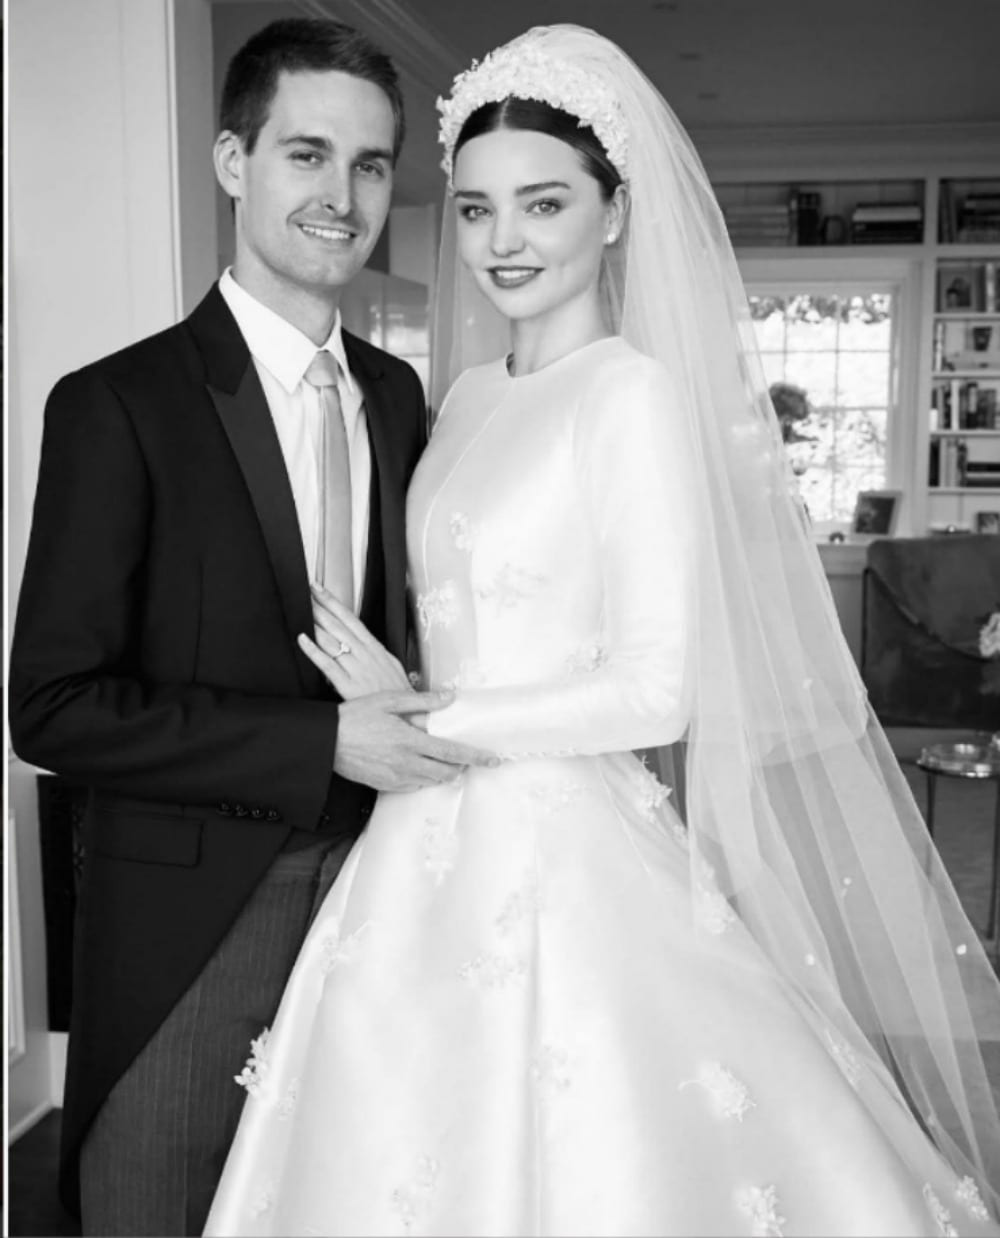 Miranda Kerr, il matrimonio segreto con Evan Spiegel [VIDEO]